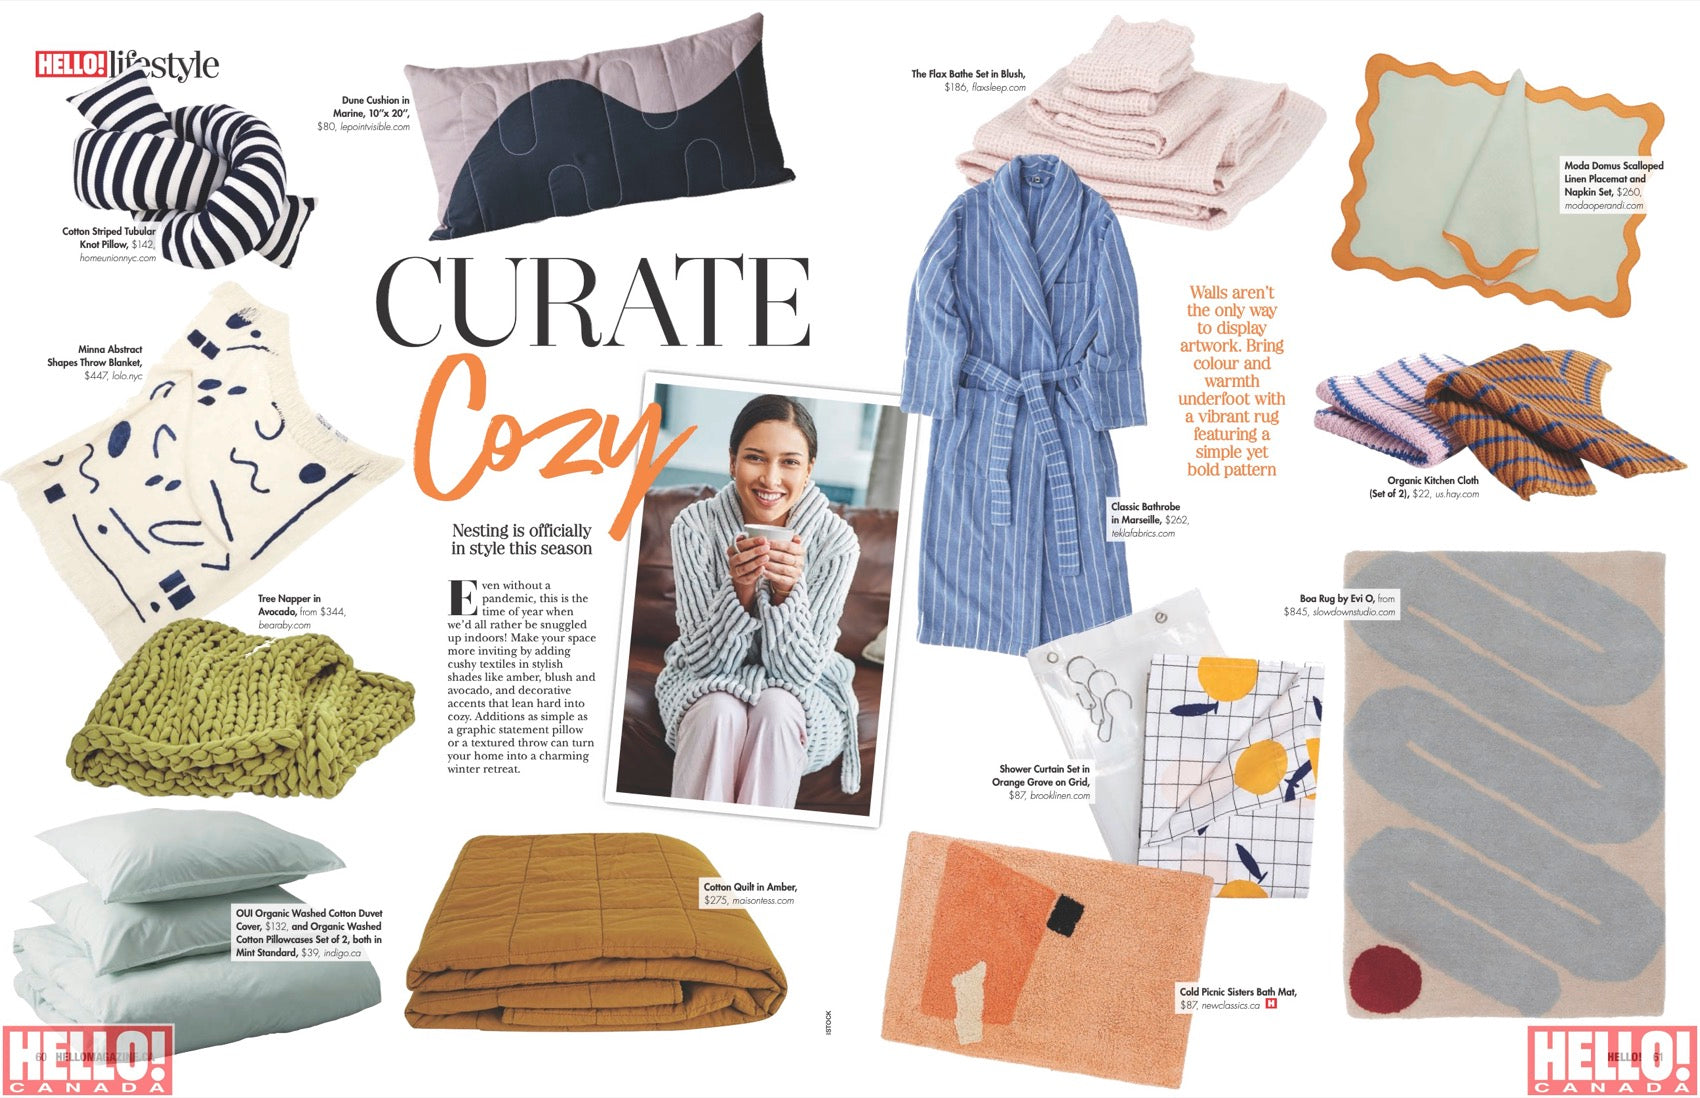 Curate cozy